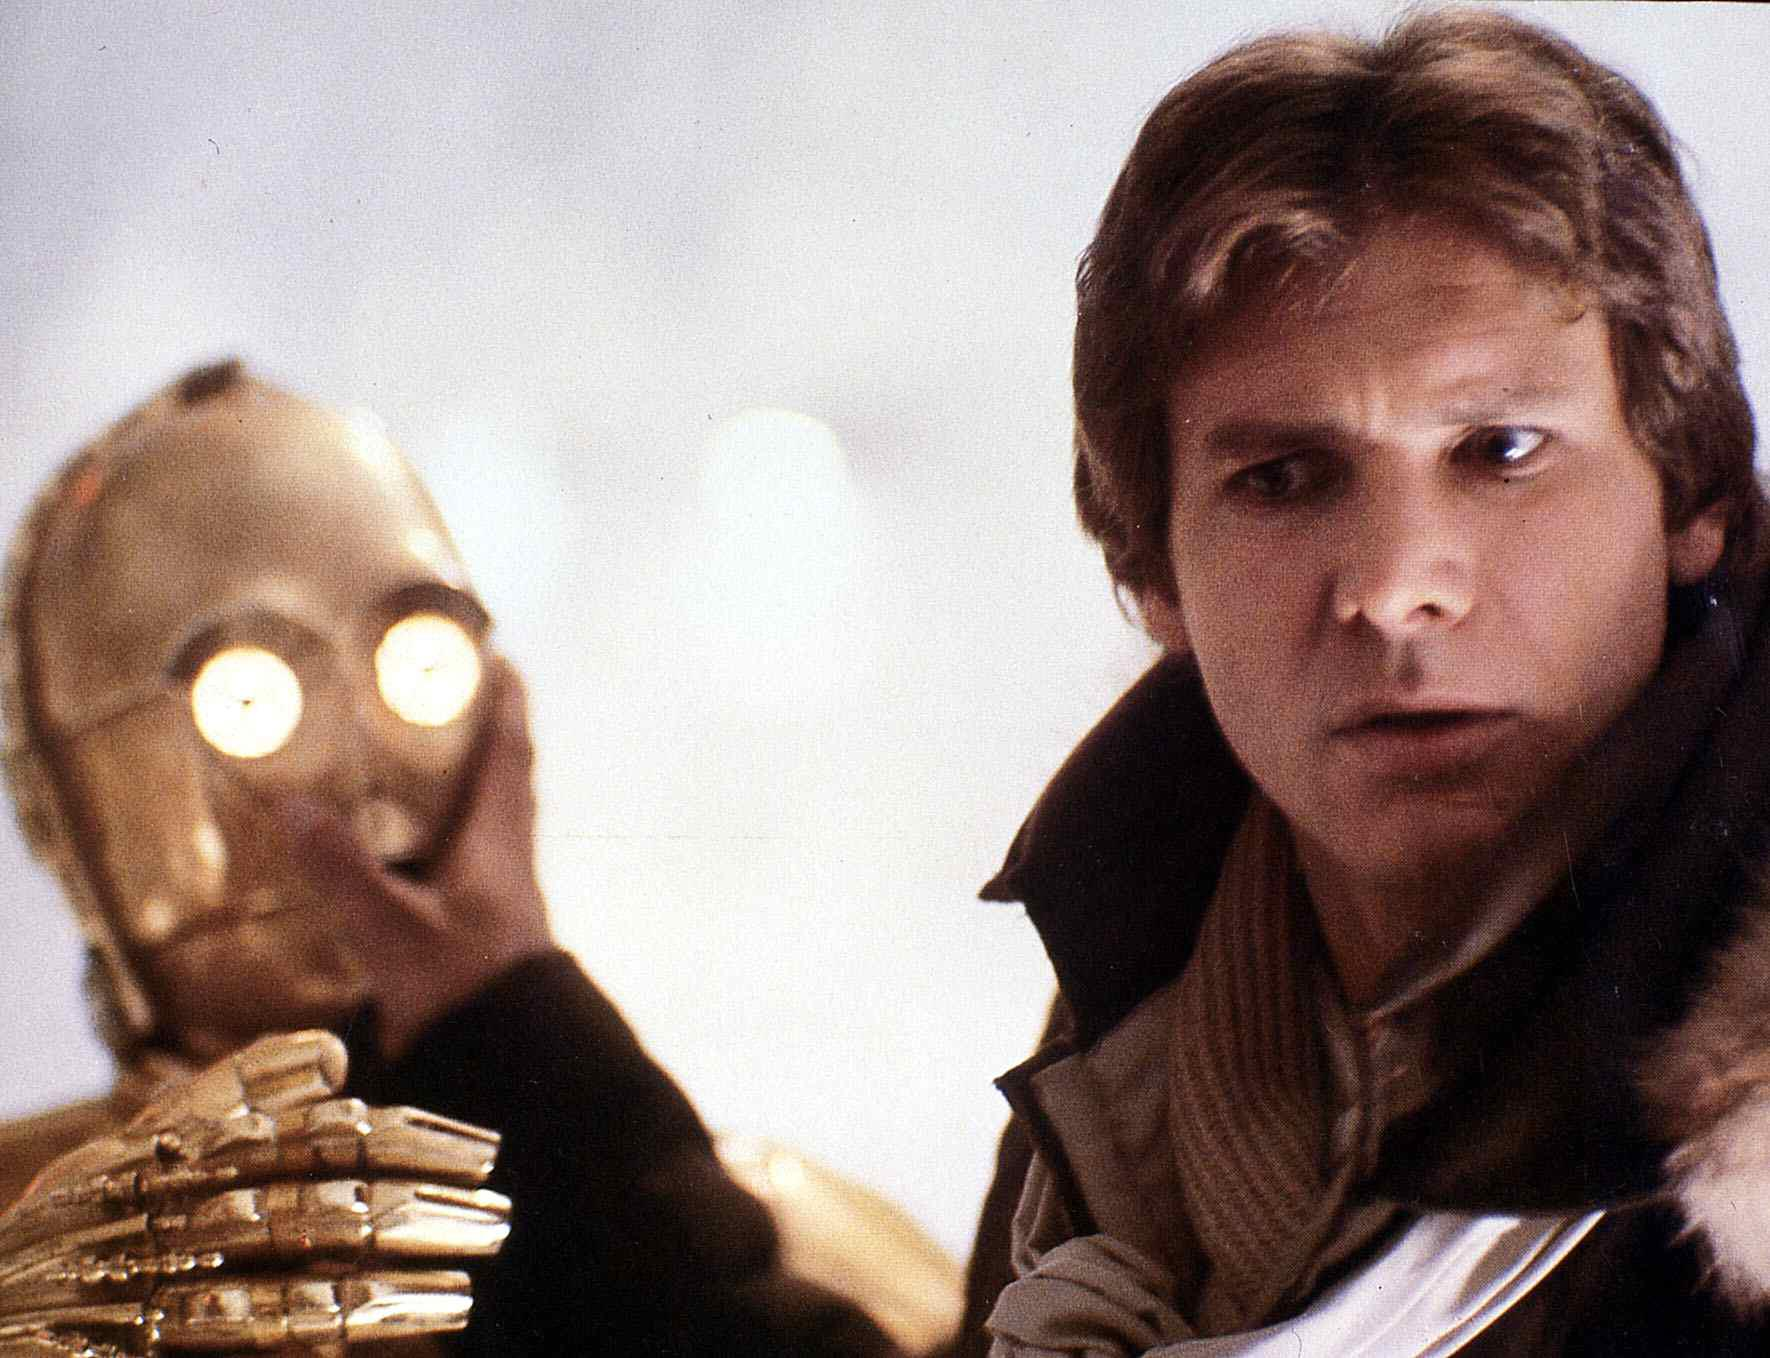 Han Solo and C-3PO in front of snow